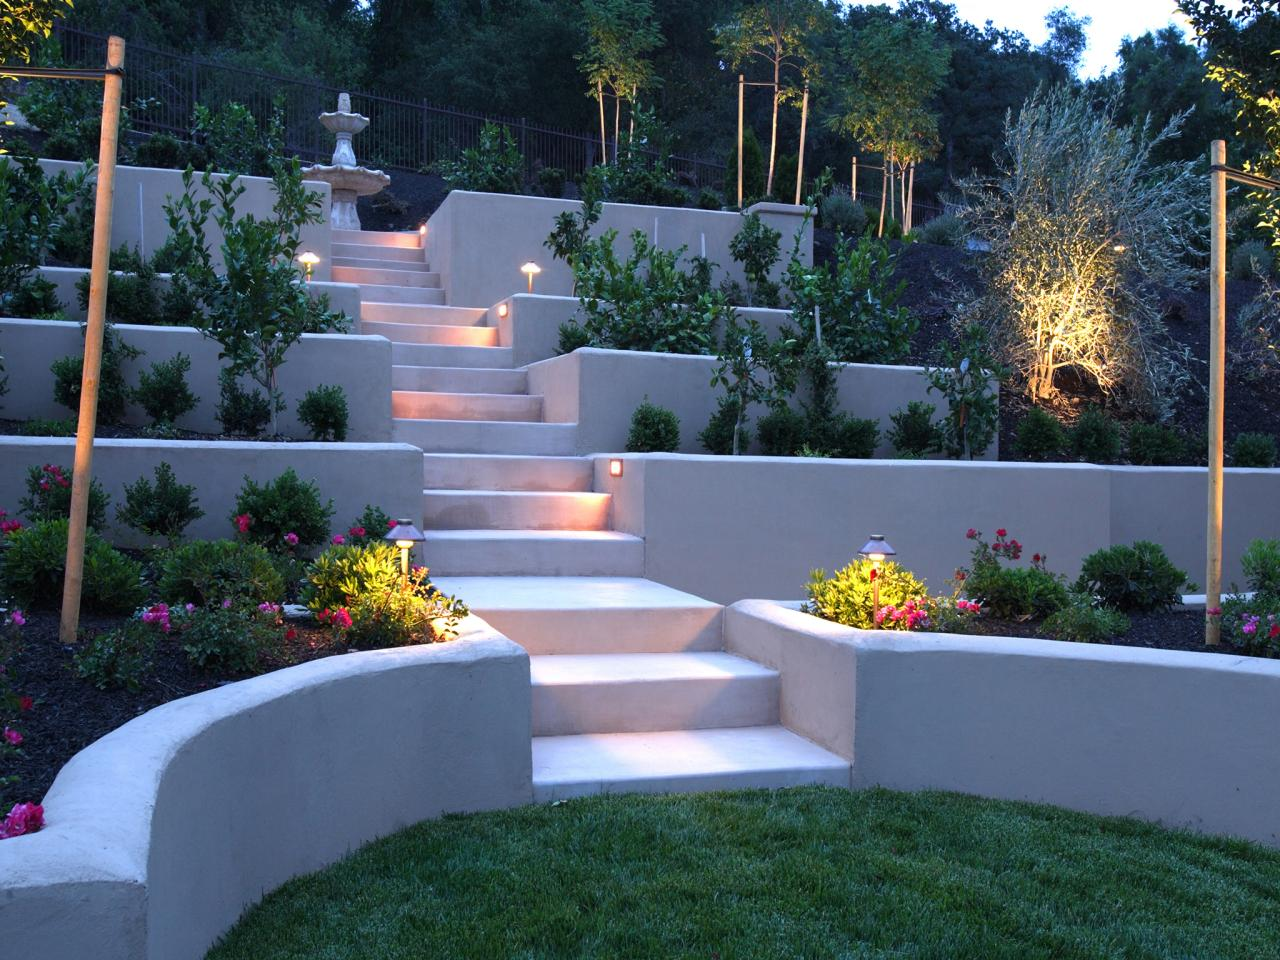 Hardscaping-Dallas TX Professional Landscapers & Outdoor Living Designs-We offer Landscape Design, Outdoor Patios & Pergolas, Outdoor Living Spaces, Stonescapes, Residential & Commercial Landscaping, Irrigation Installation & Repairs, Drainage Systems, Landscape Lighting, Outdoor Living Spaces, Tree Service, Lawn Service, and more.